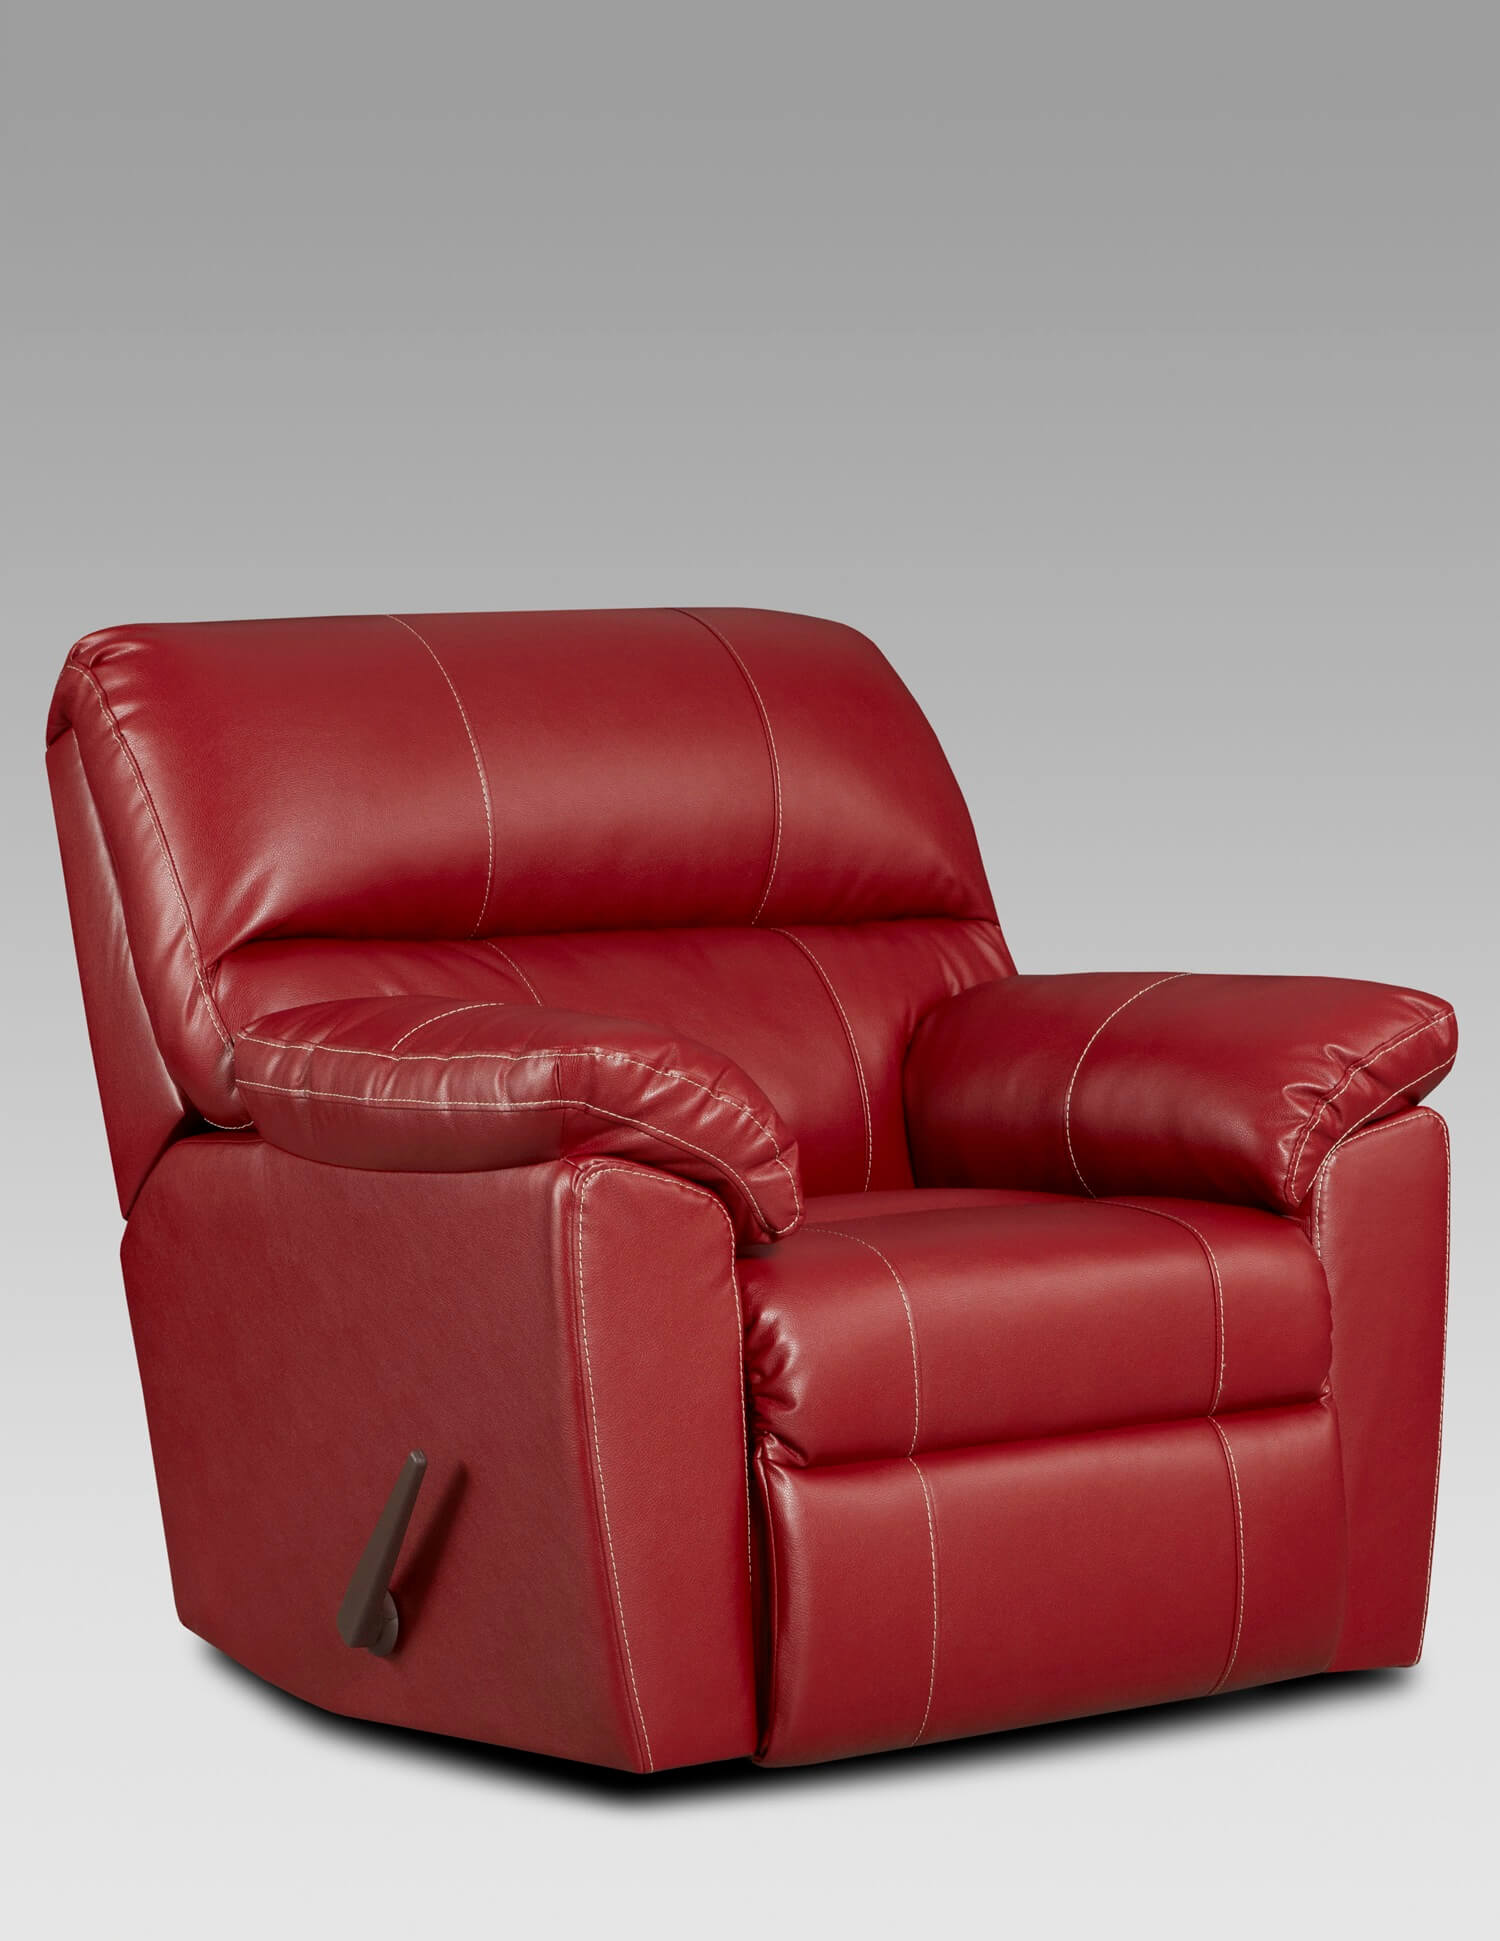 Austin Red Rocker Recliner Recliners